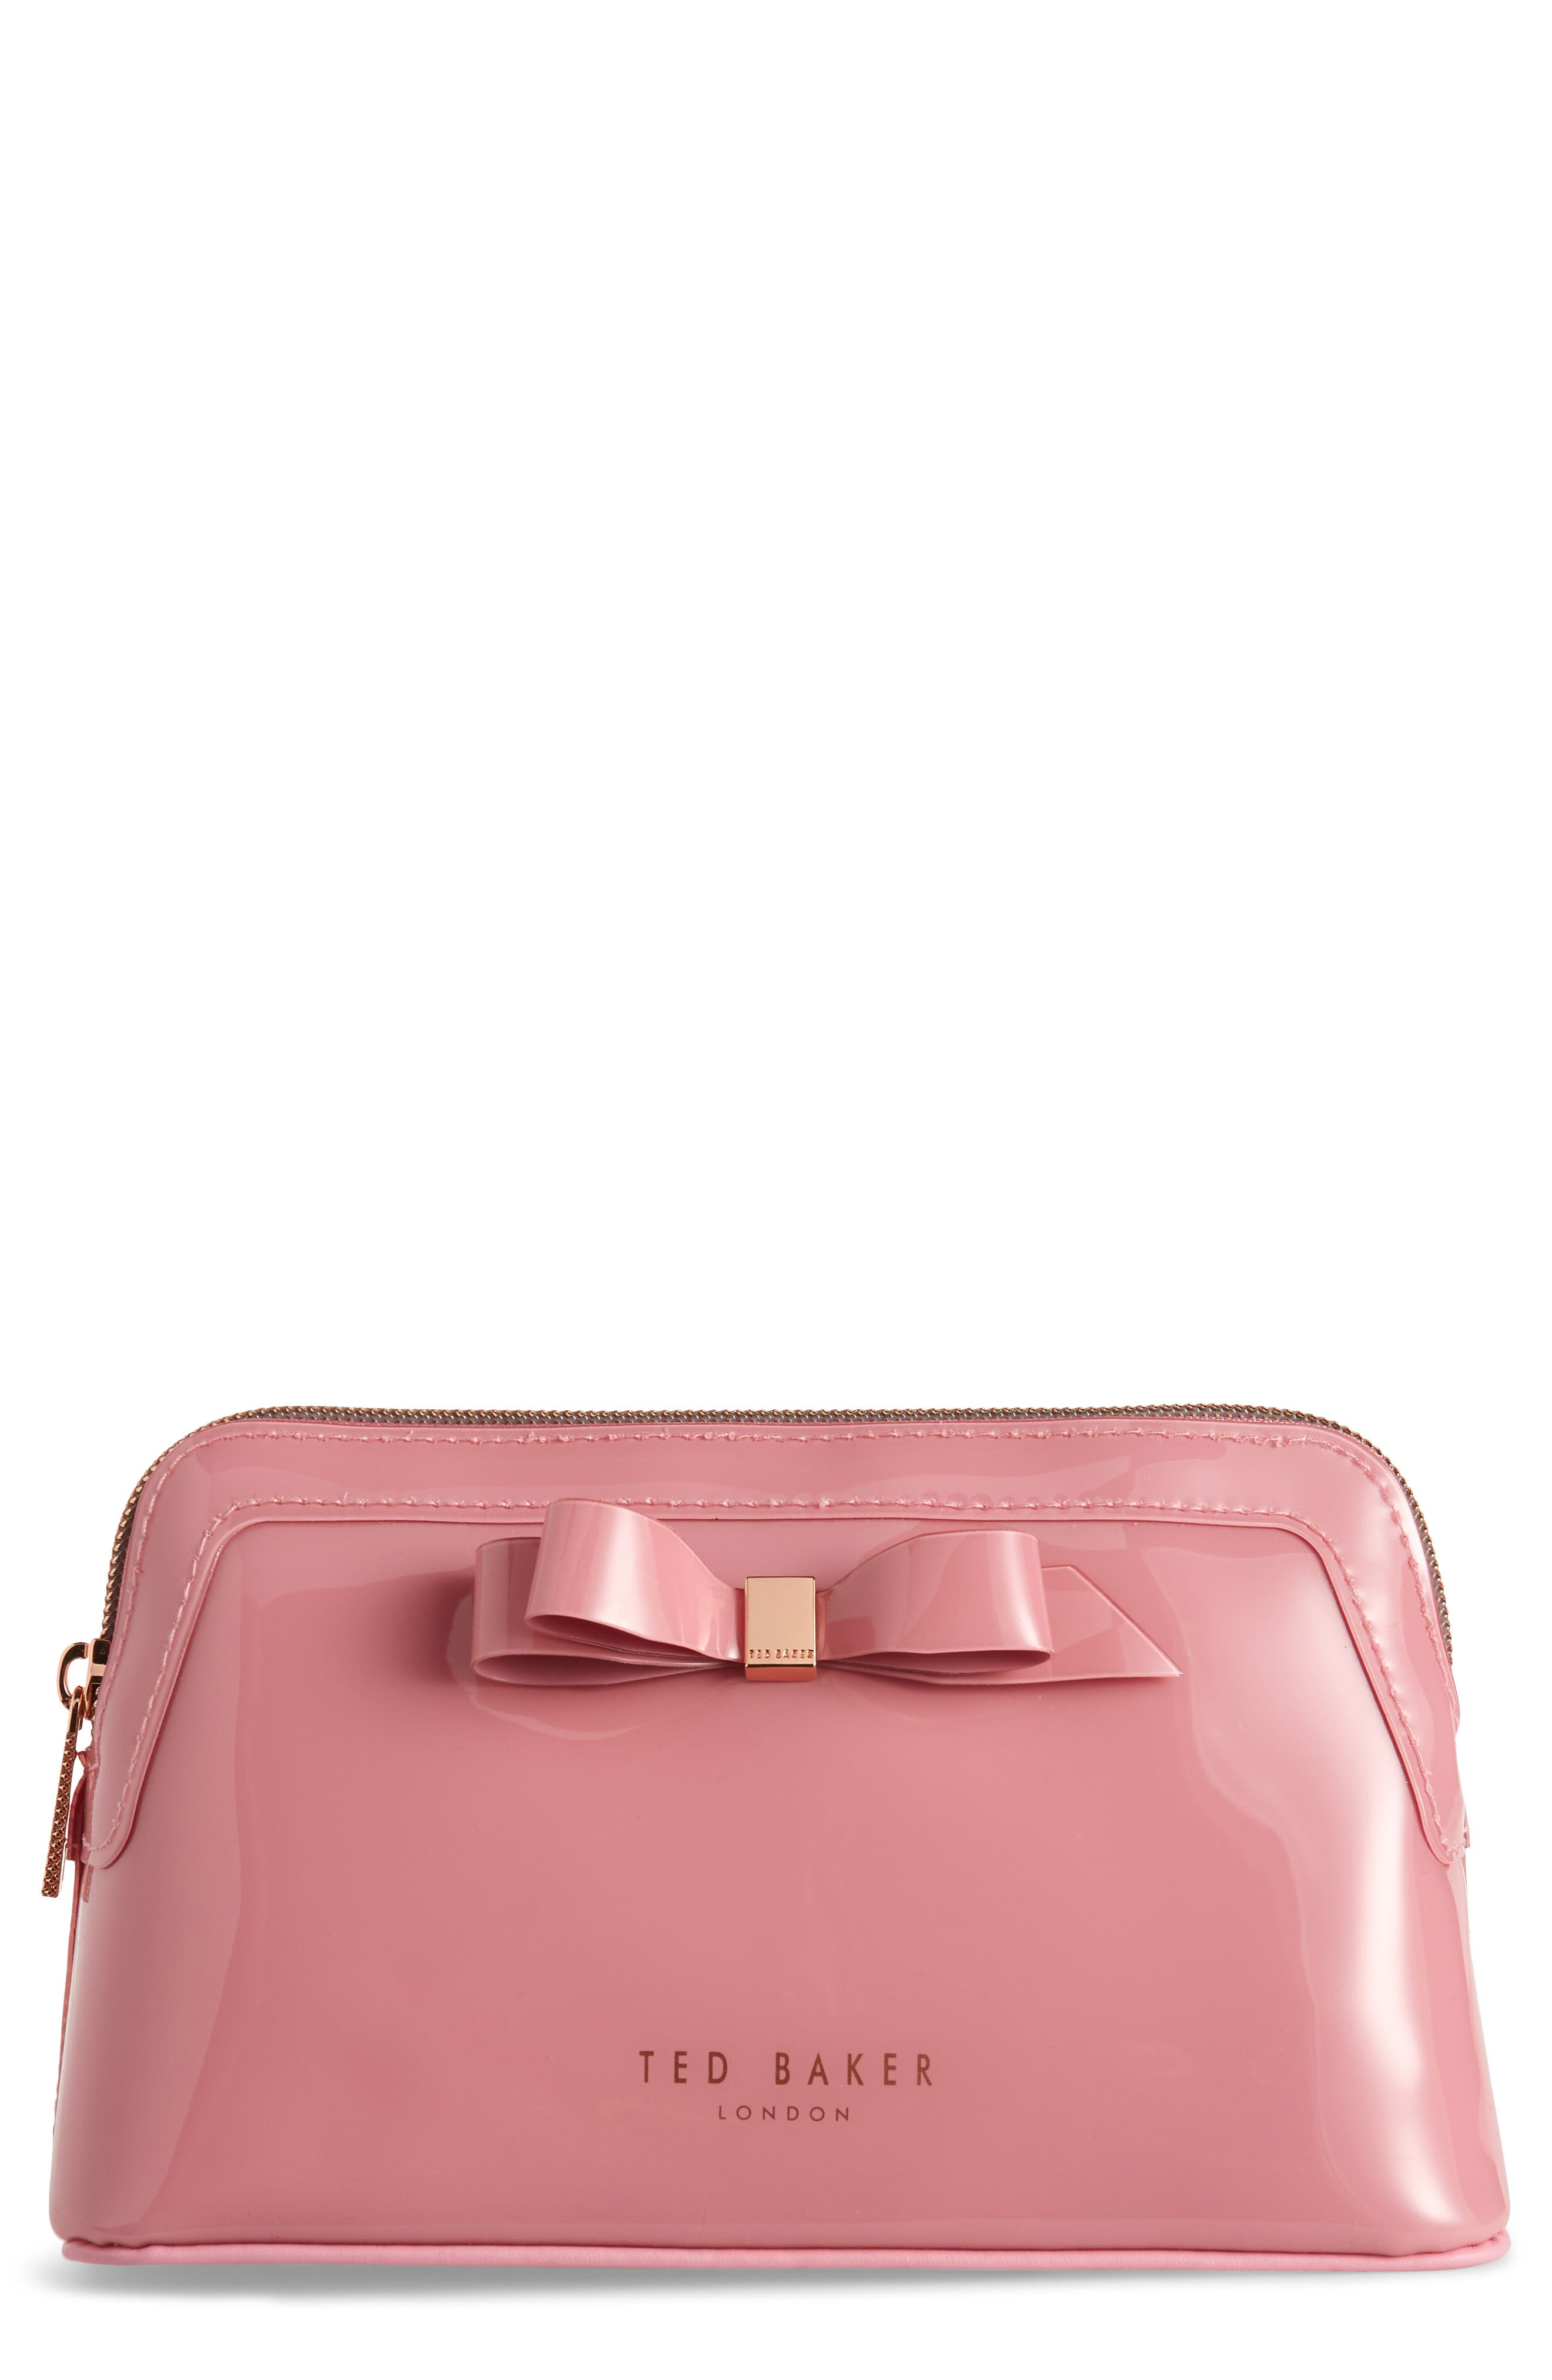 Cahira Bow Cosmetics Case in Pink